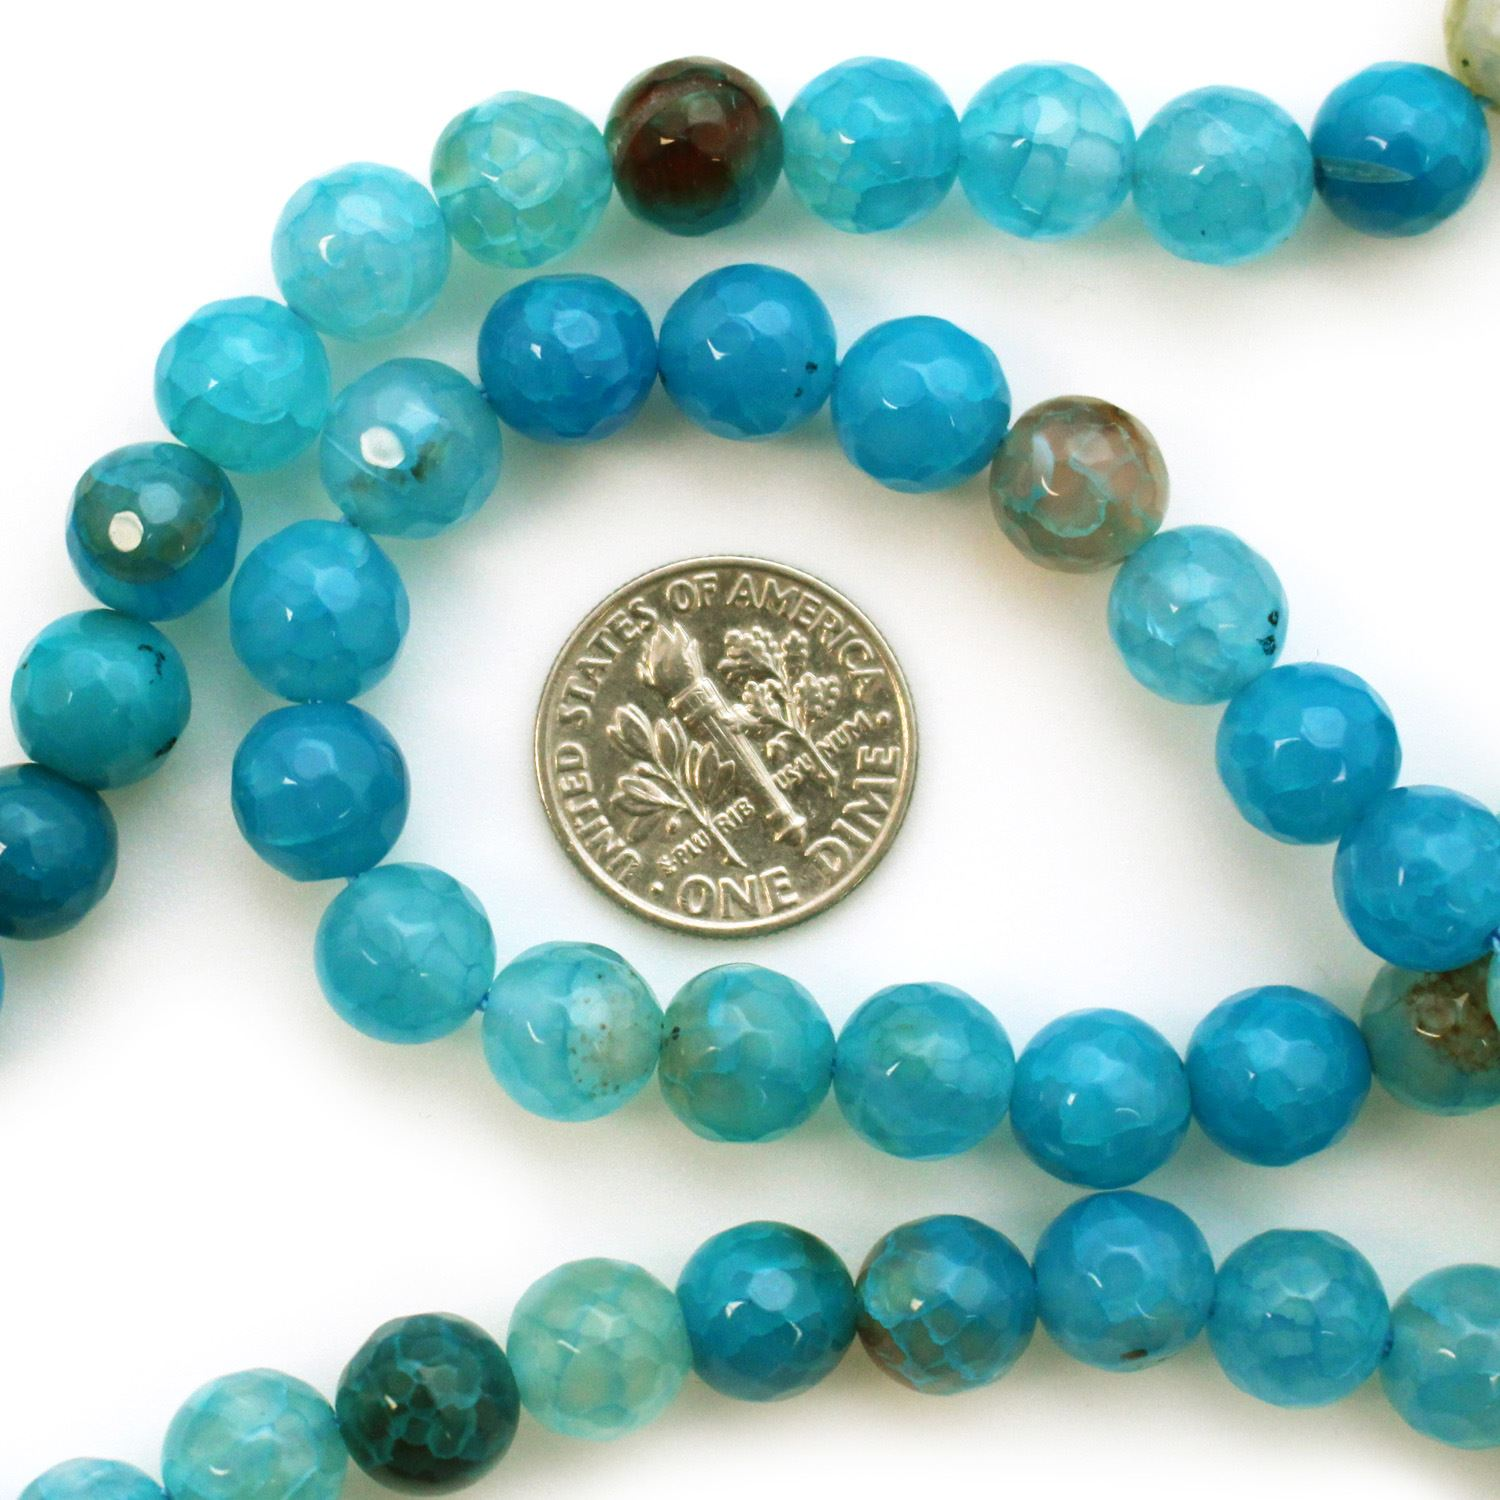 Teal Blue Agate Beads - Faceted Round 8mm (Sold Per Strand)